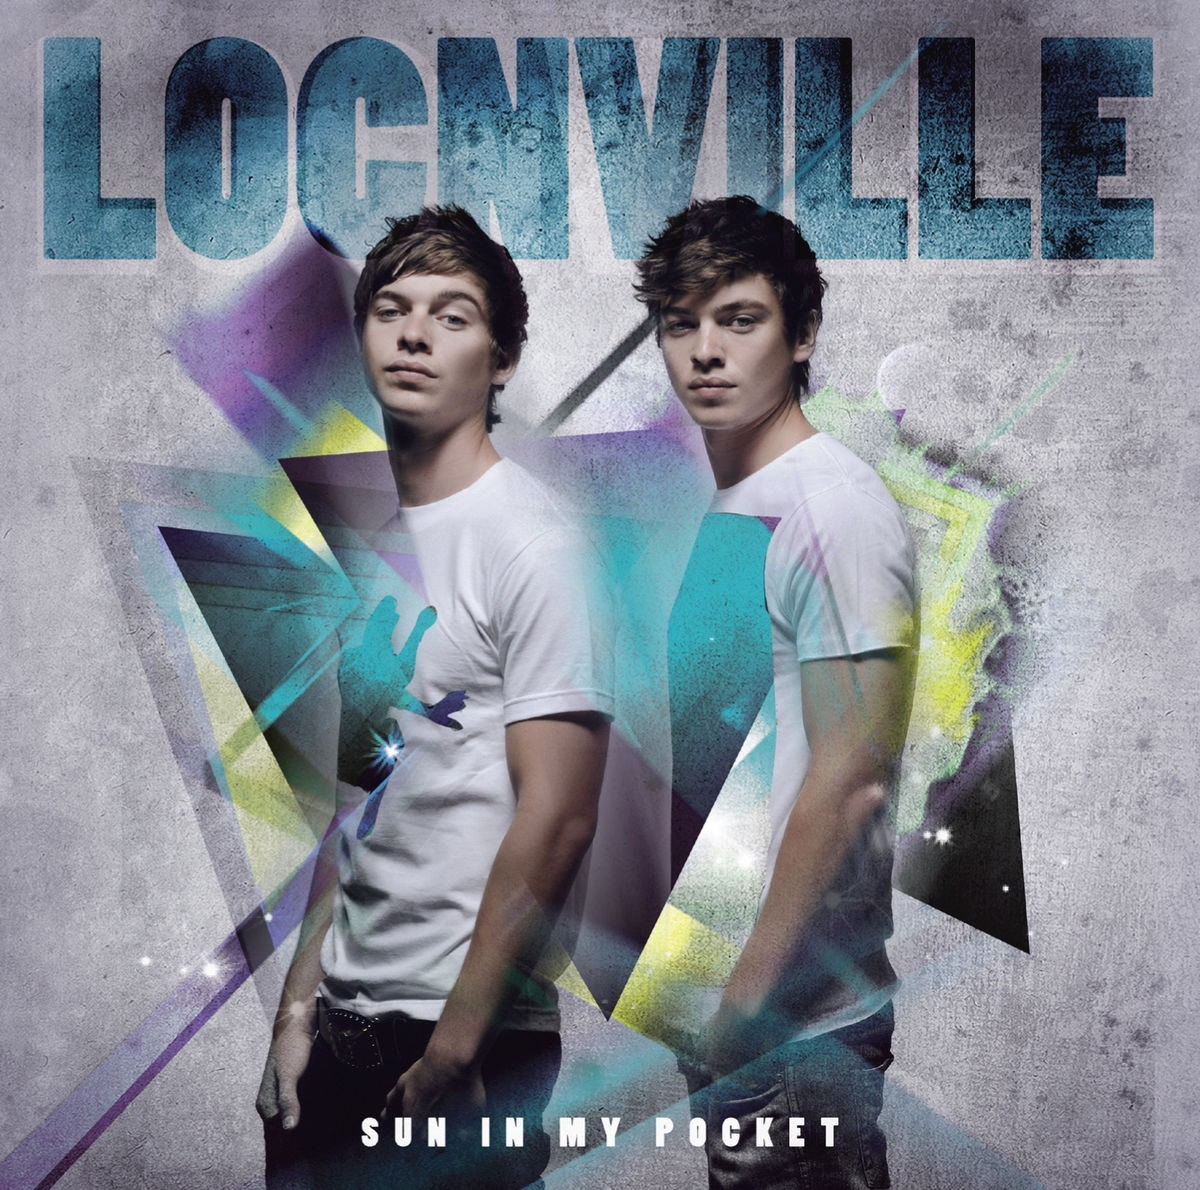 Locnville - Sun In My Pocket CD - CDJUST 417